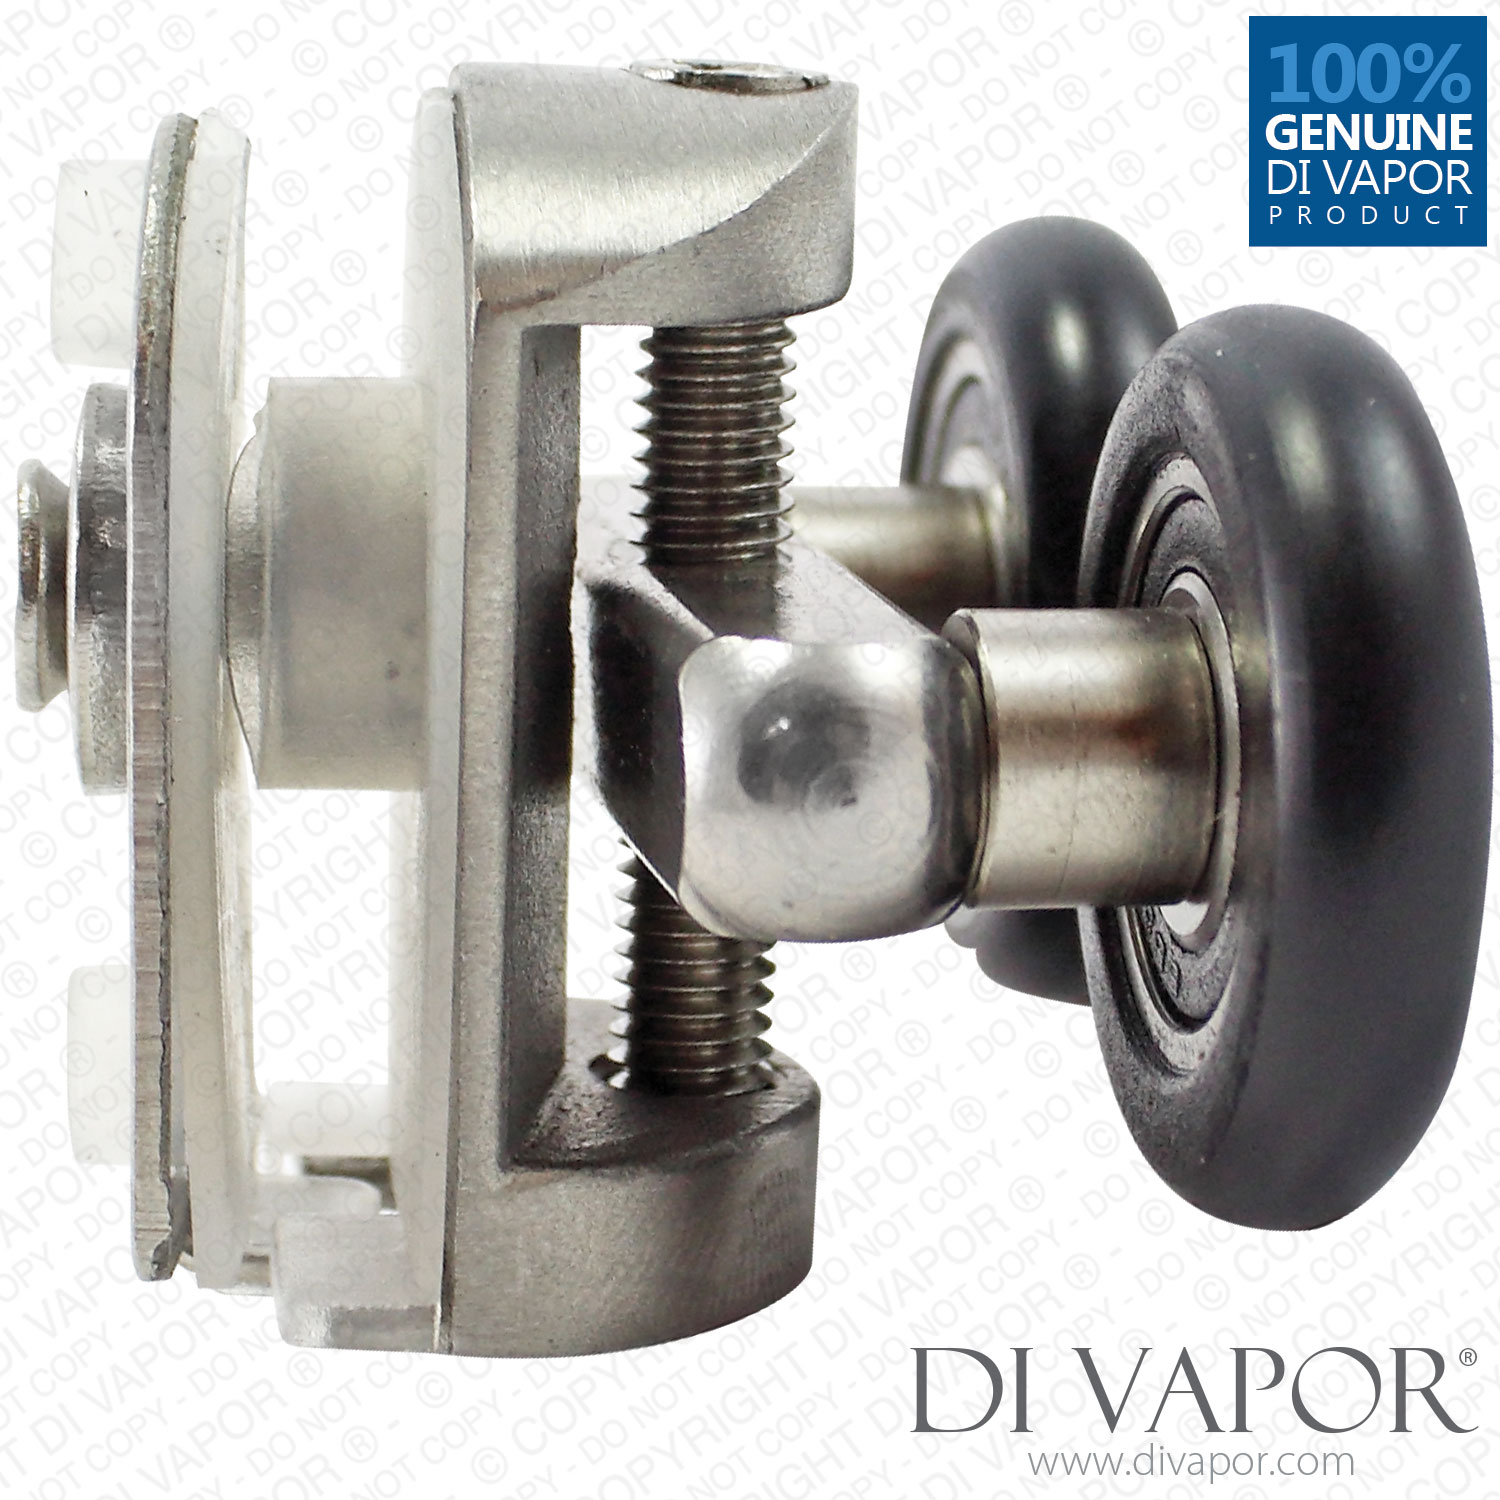 Di Vapor R 25mm 26mm Fixed Stainless Steel Black Double